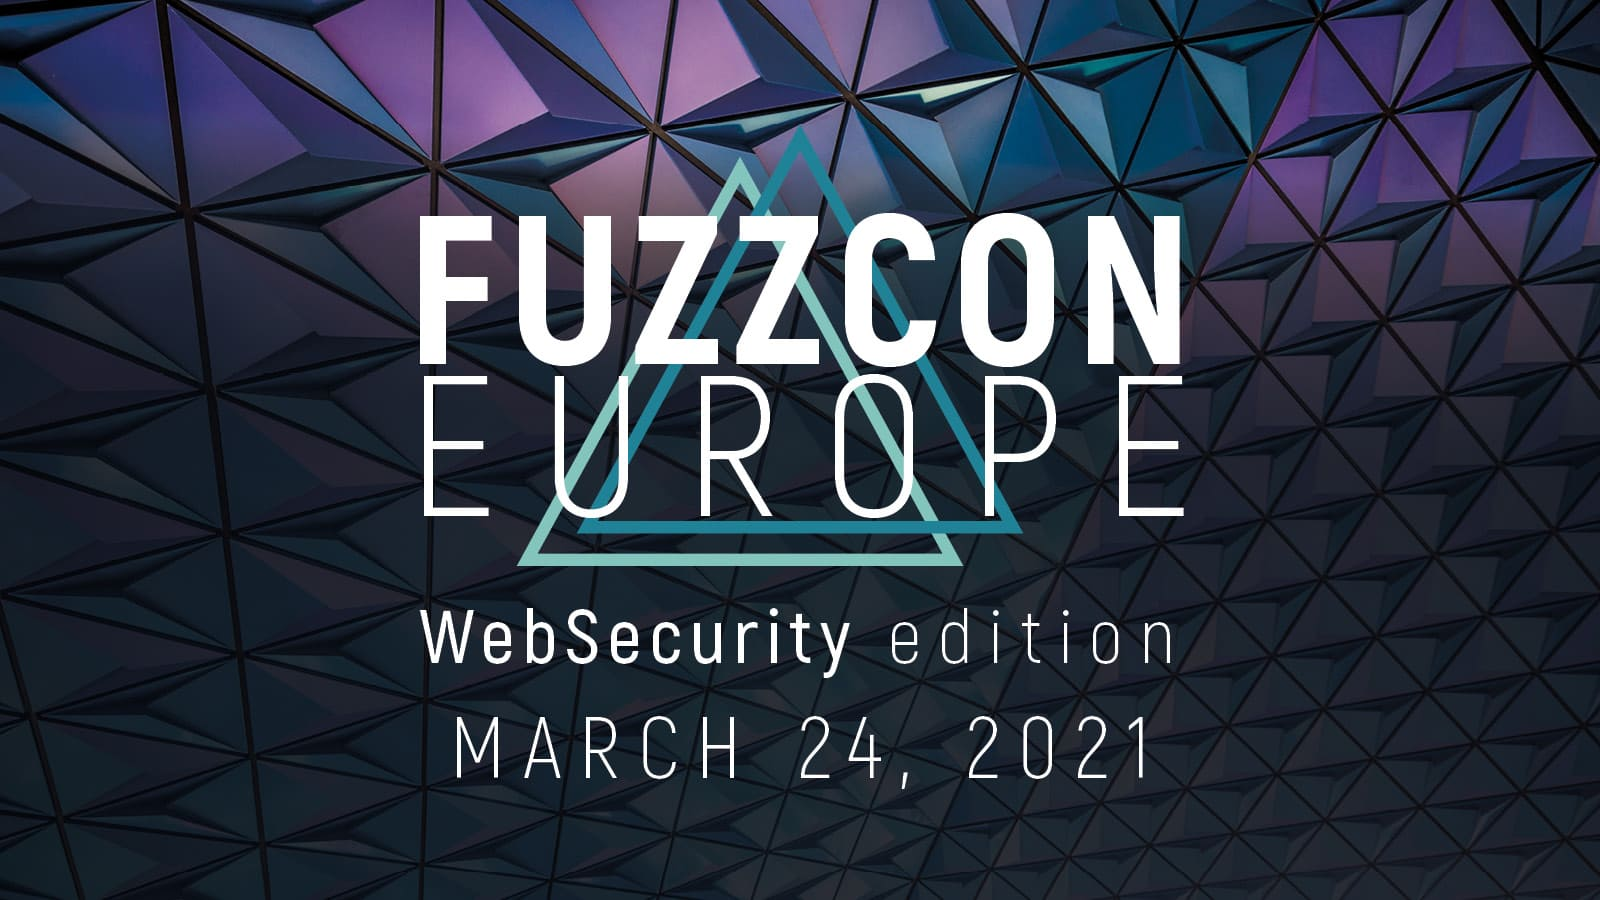 FuzzCon - WebSecurity Edition